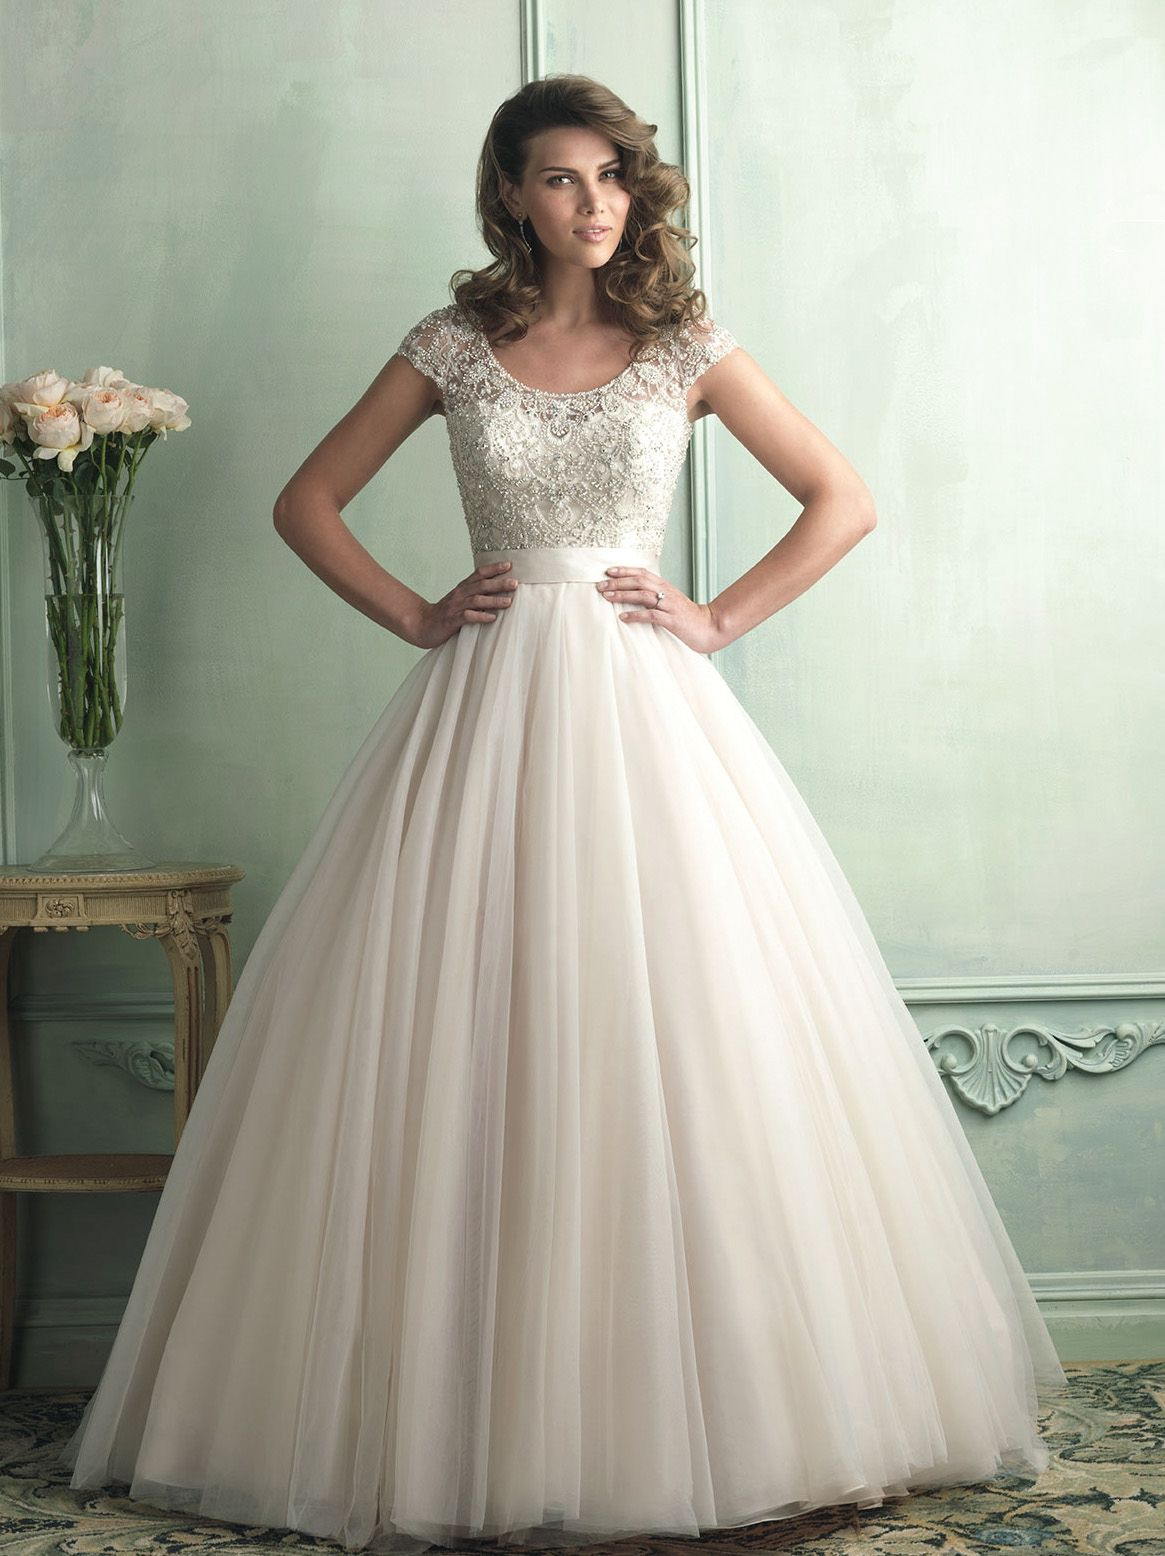 Hoop Skirt for Wedding Dress - Dresses for Guest at Wedding Check ...